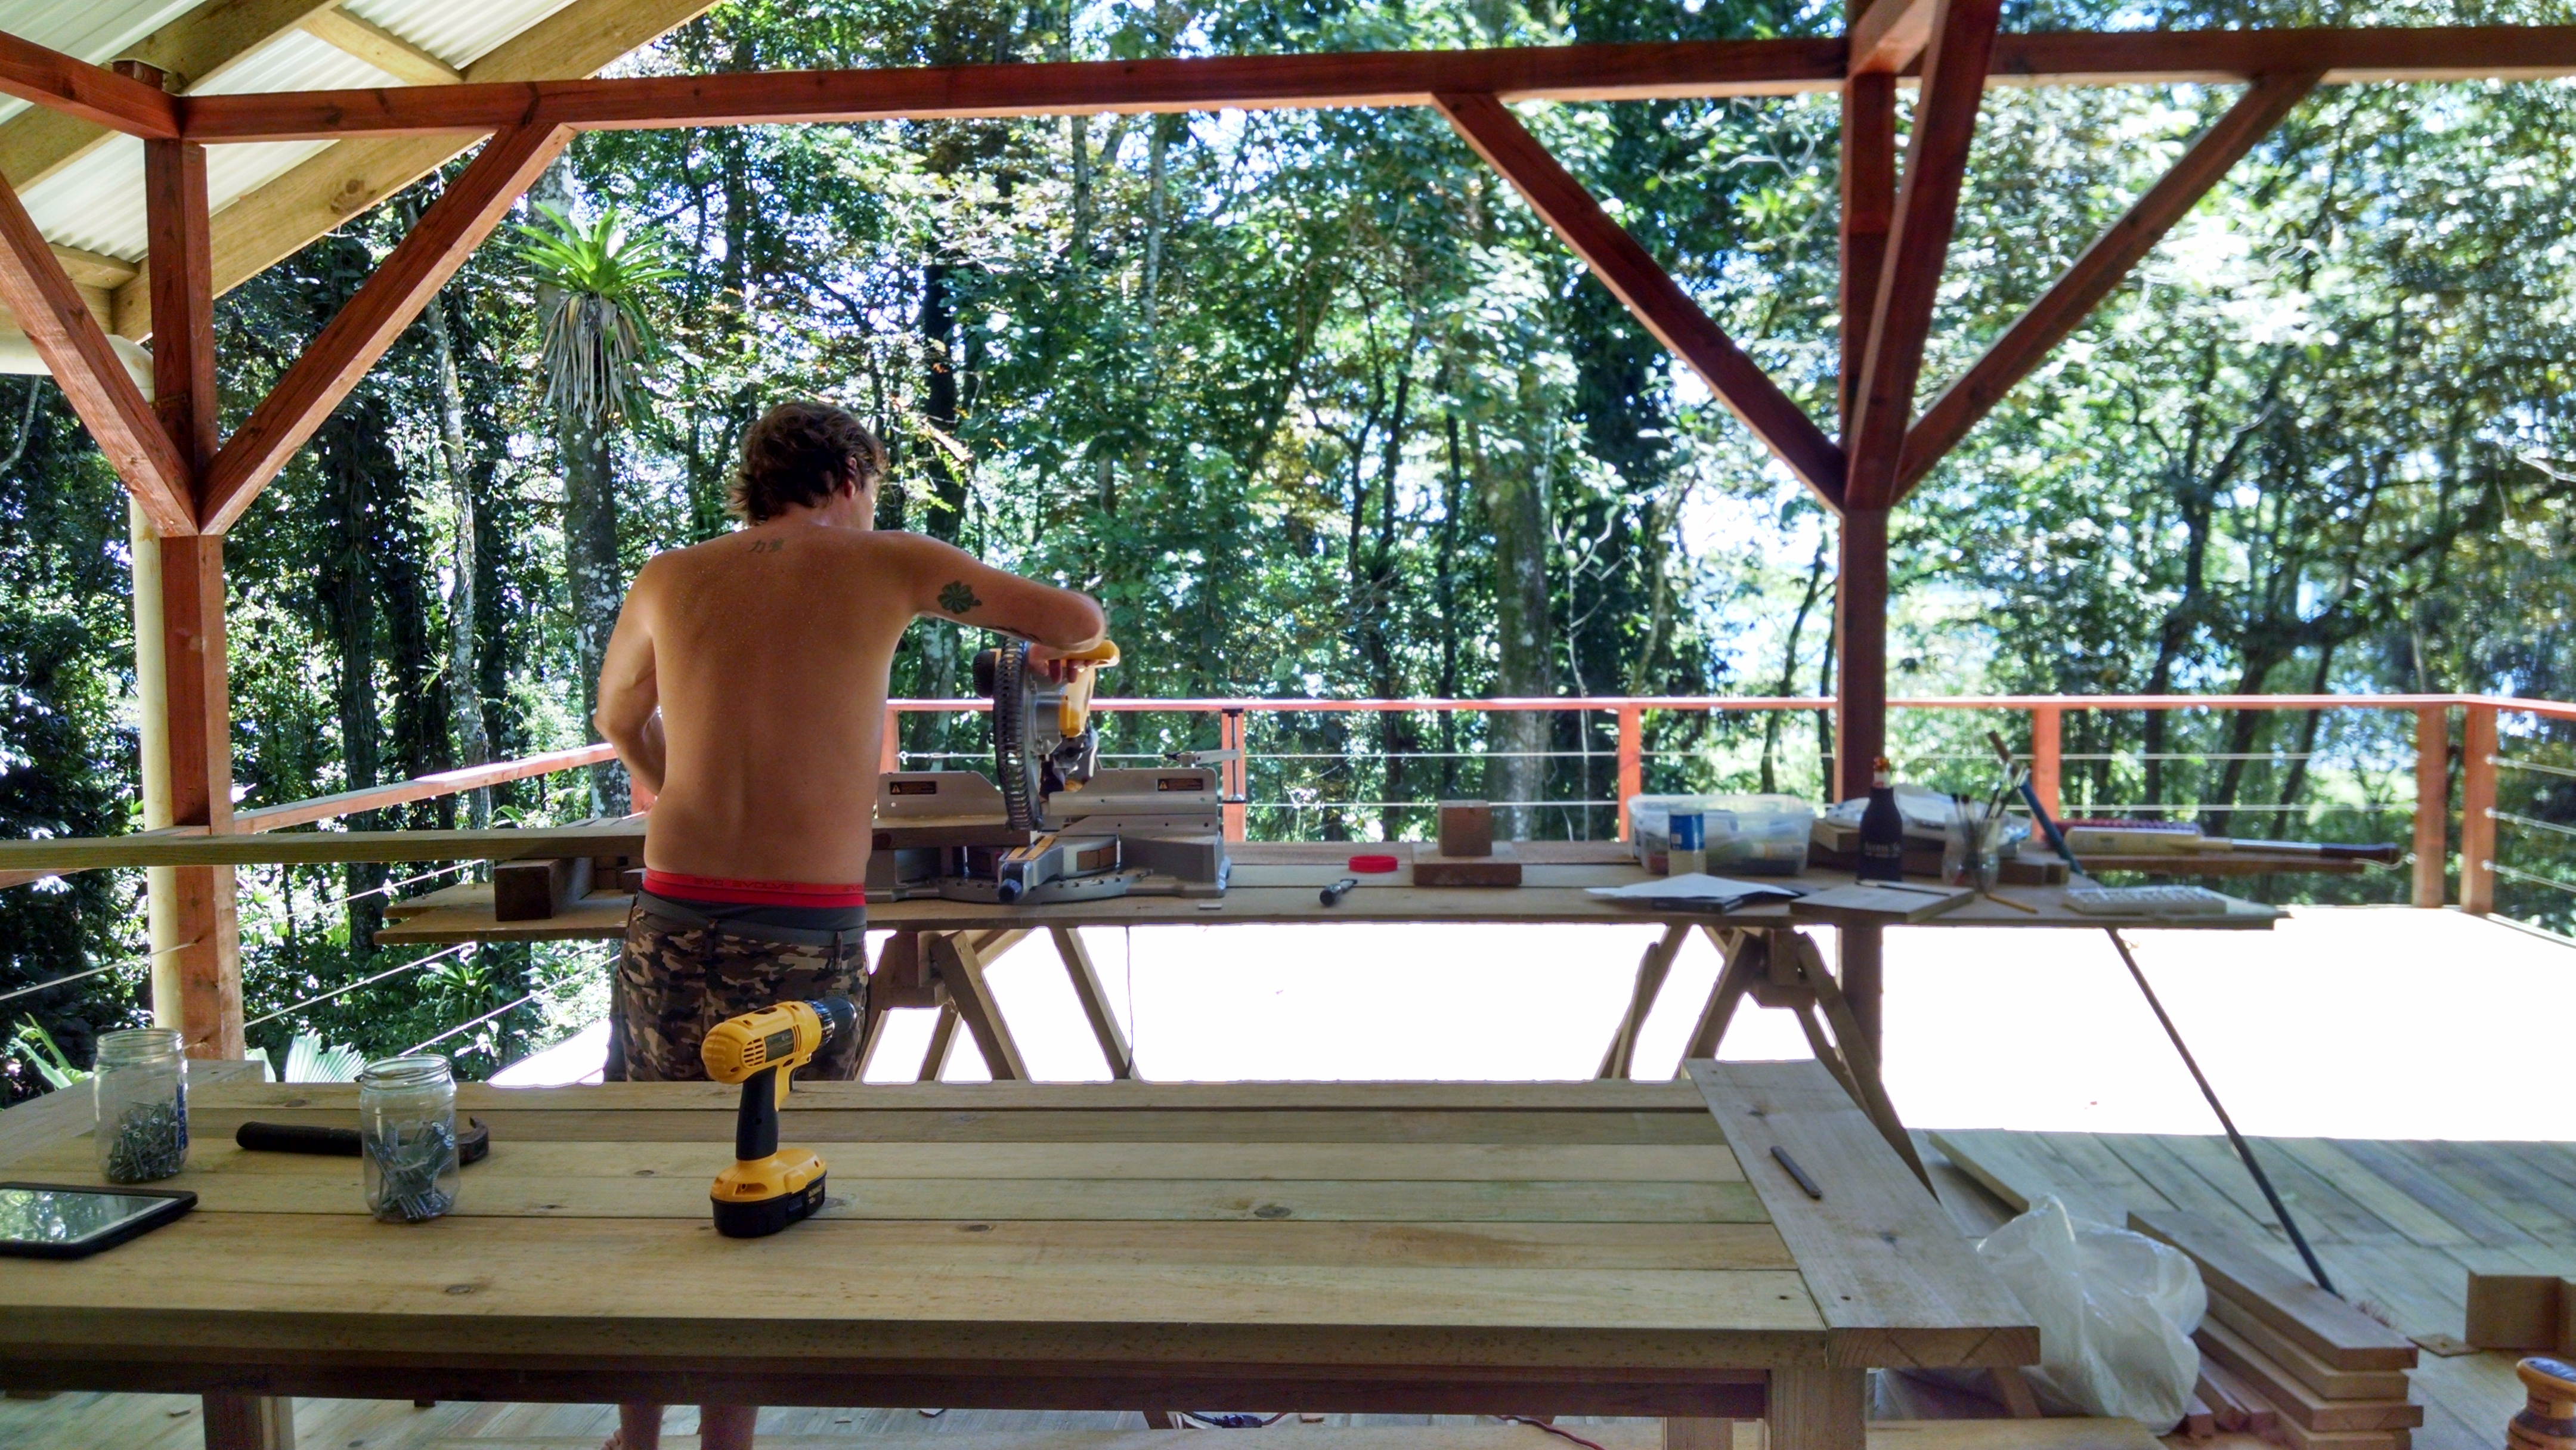 Photo of David working on table - with an amazing view while he works.